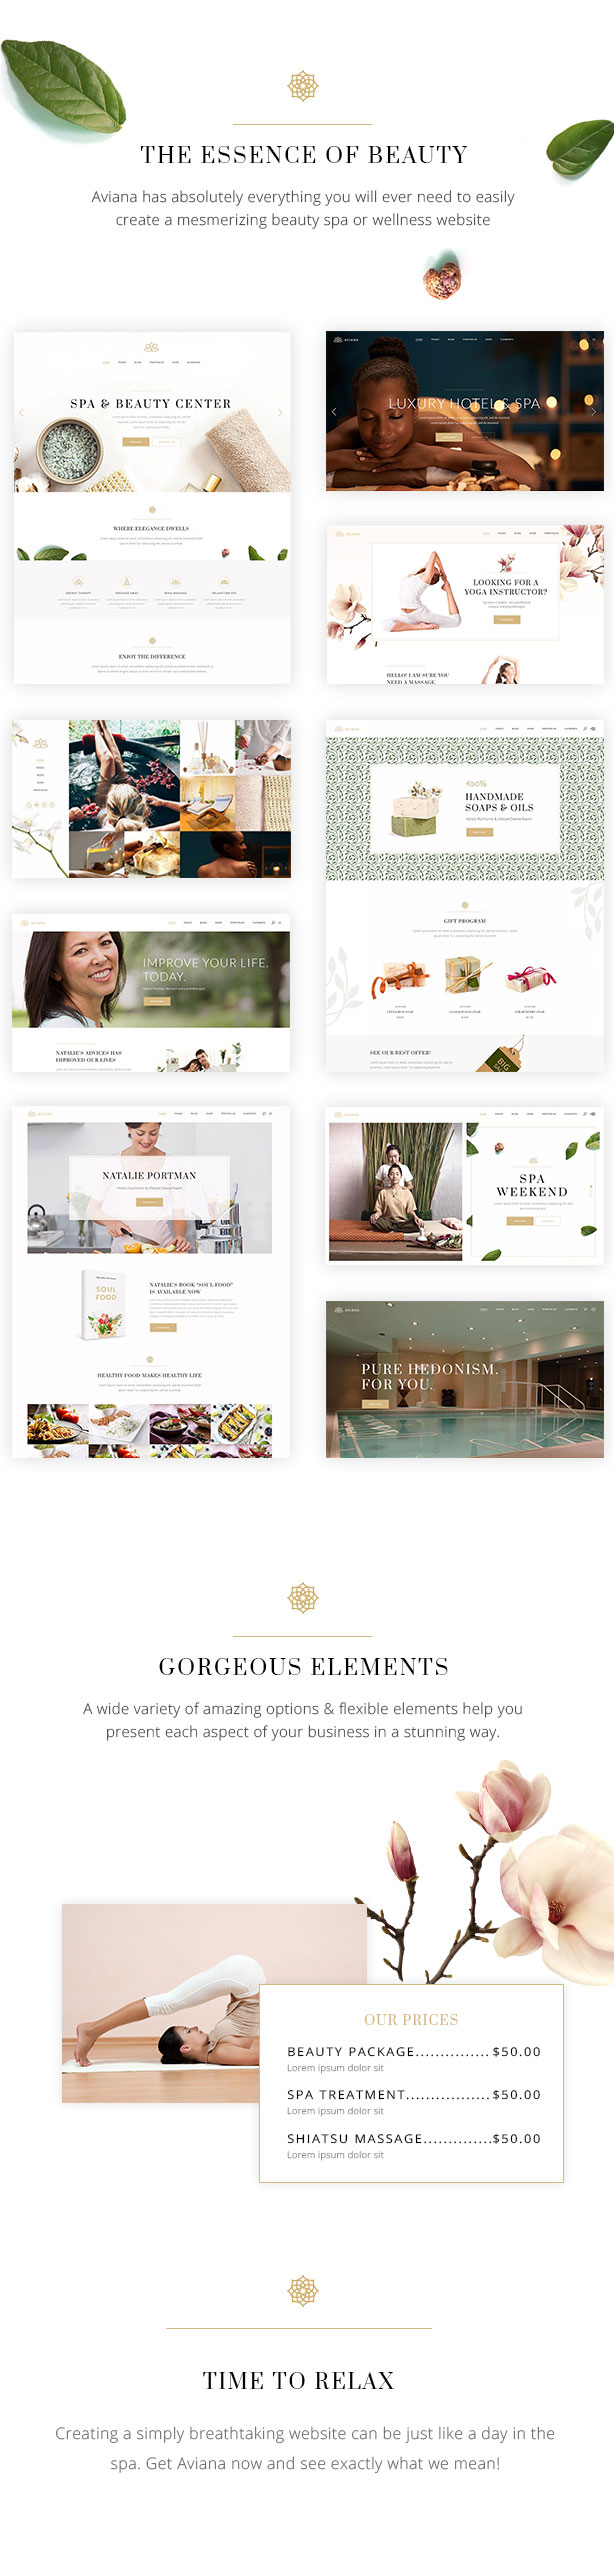 Aviana - An Elegant Lifestyle and Wellness and Spa Theme - 1